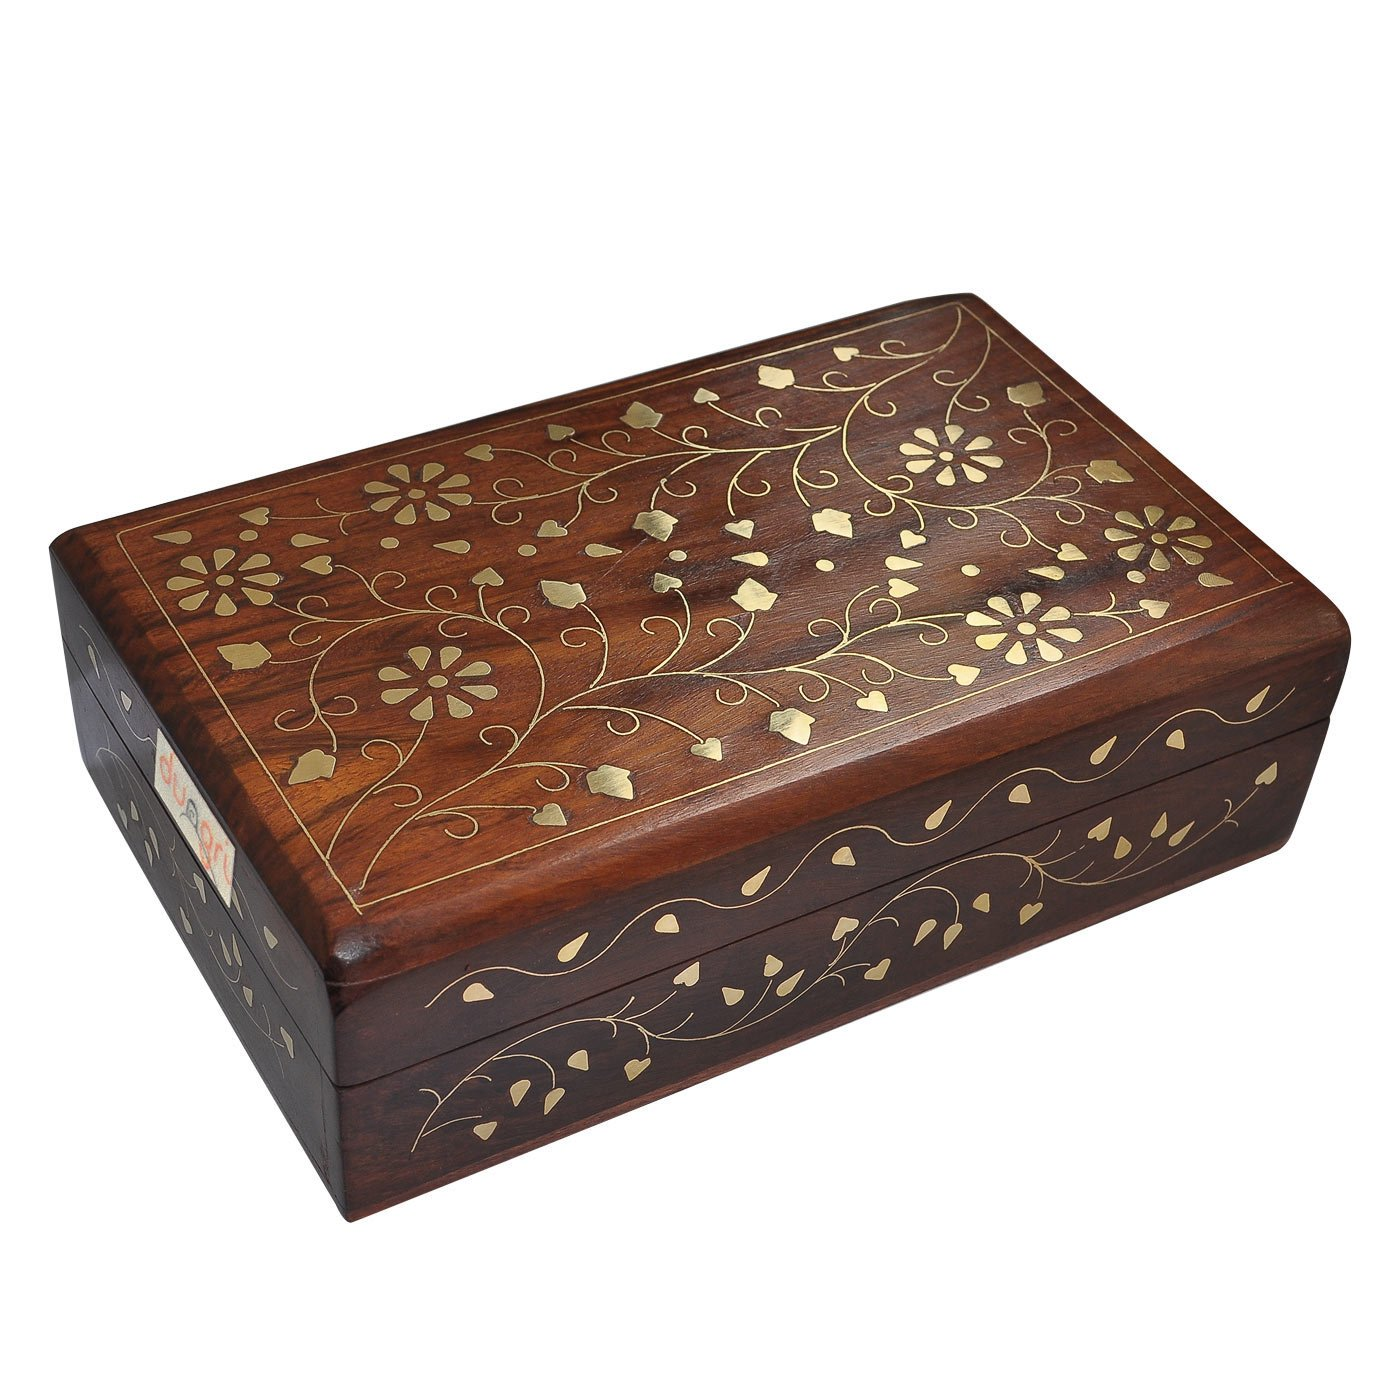 Dungricraft Wooden Jewelry Box Brass Inlay Unique Floral and Leaf Golden Color Design Dungri India Craft